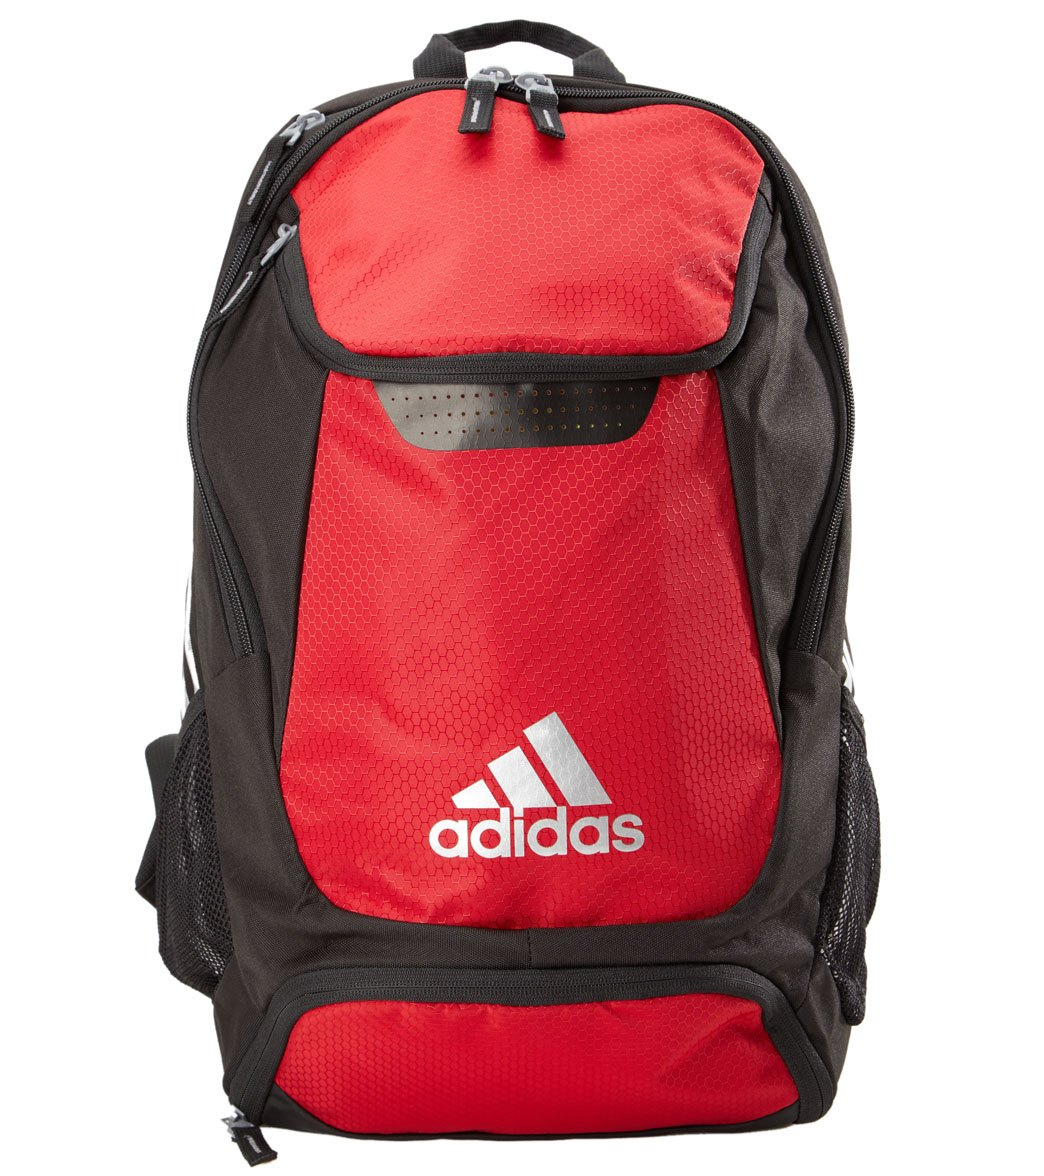 Adidas Stadium Team Backpack at SwimOutlet.com - Free Shipping e02ca553b173a